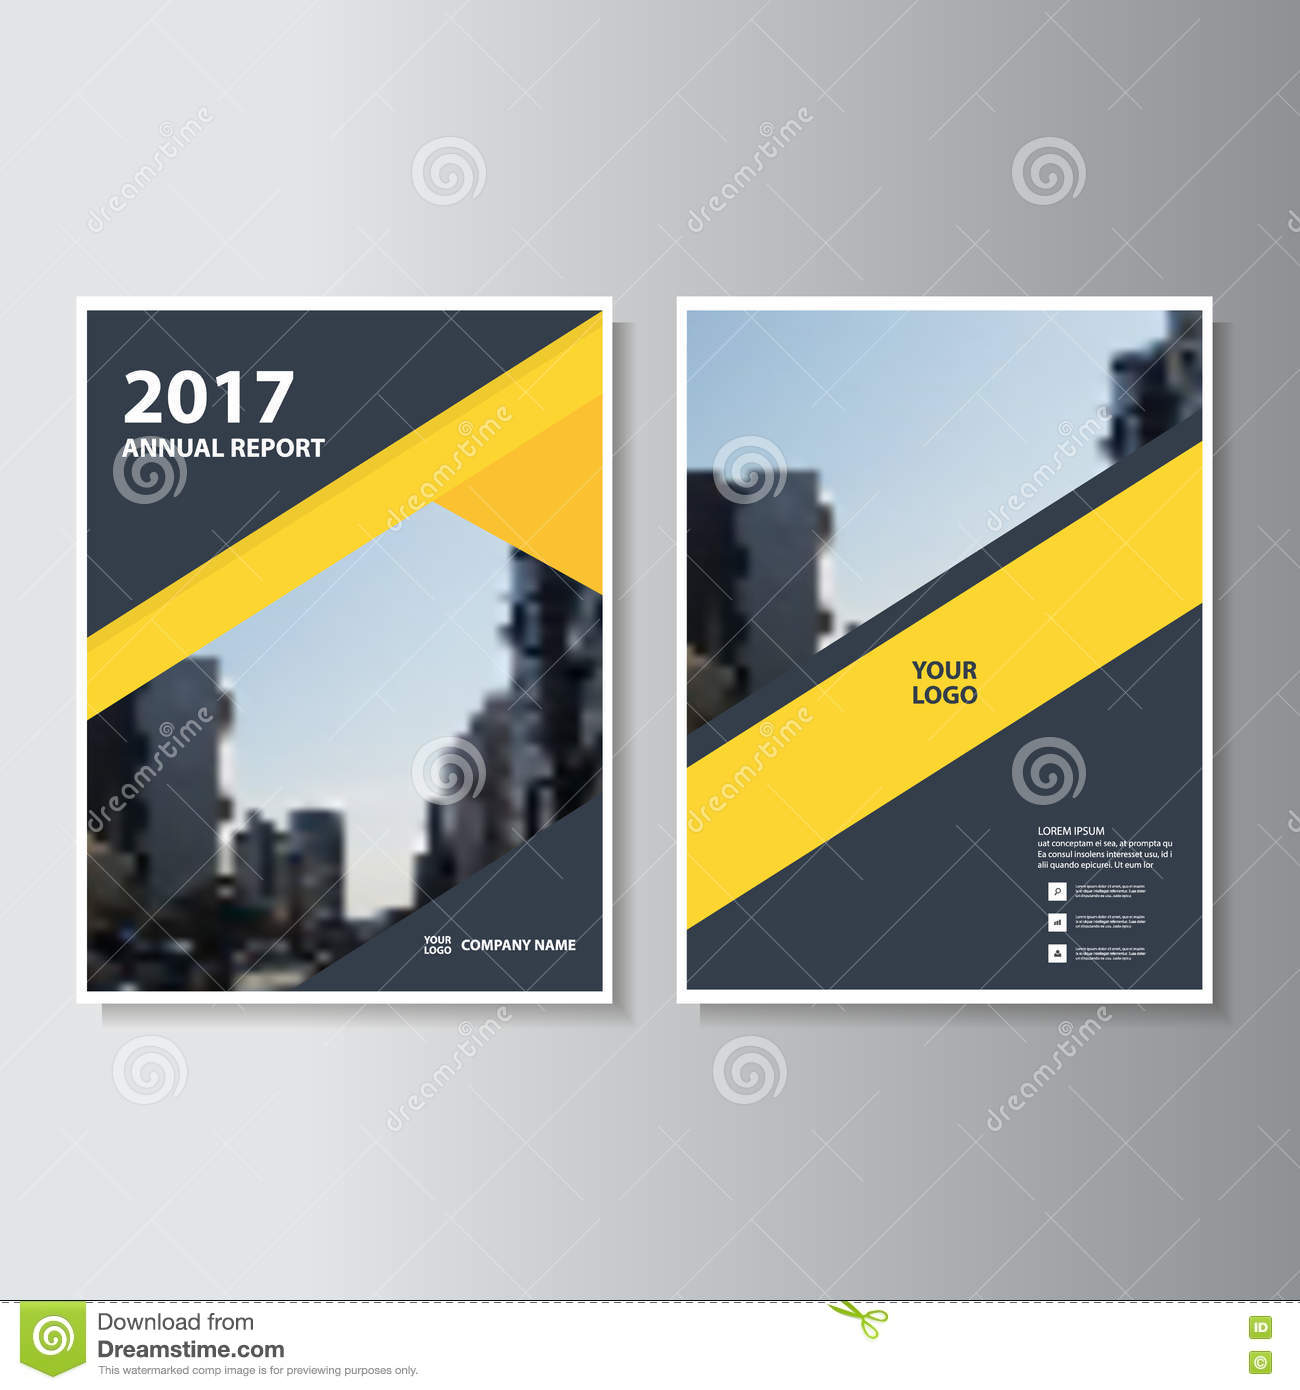 Book With Black And Yellow Cover : Yellow black geometric vector annual report leaflet